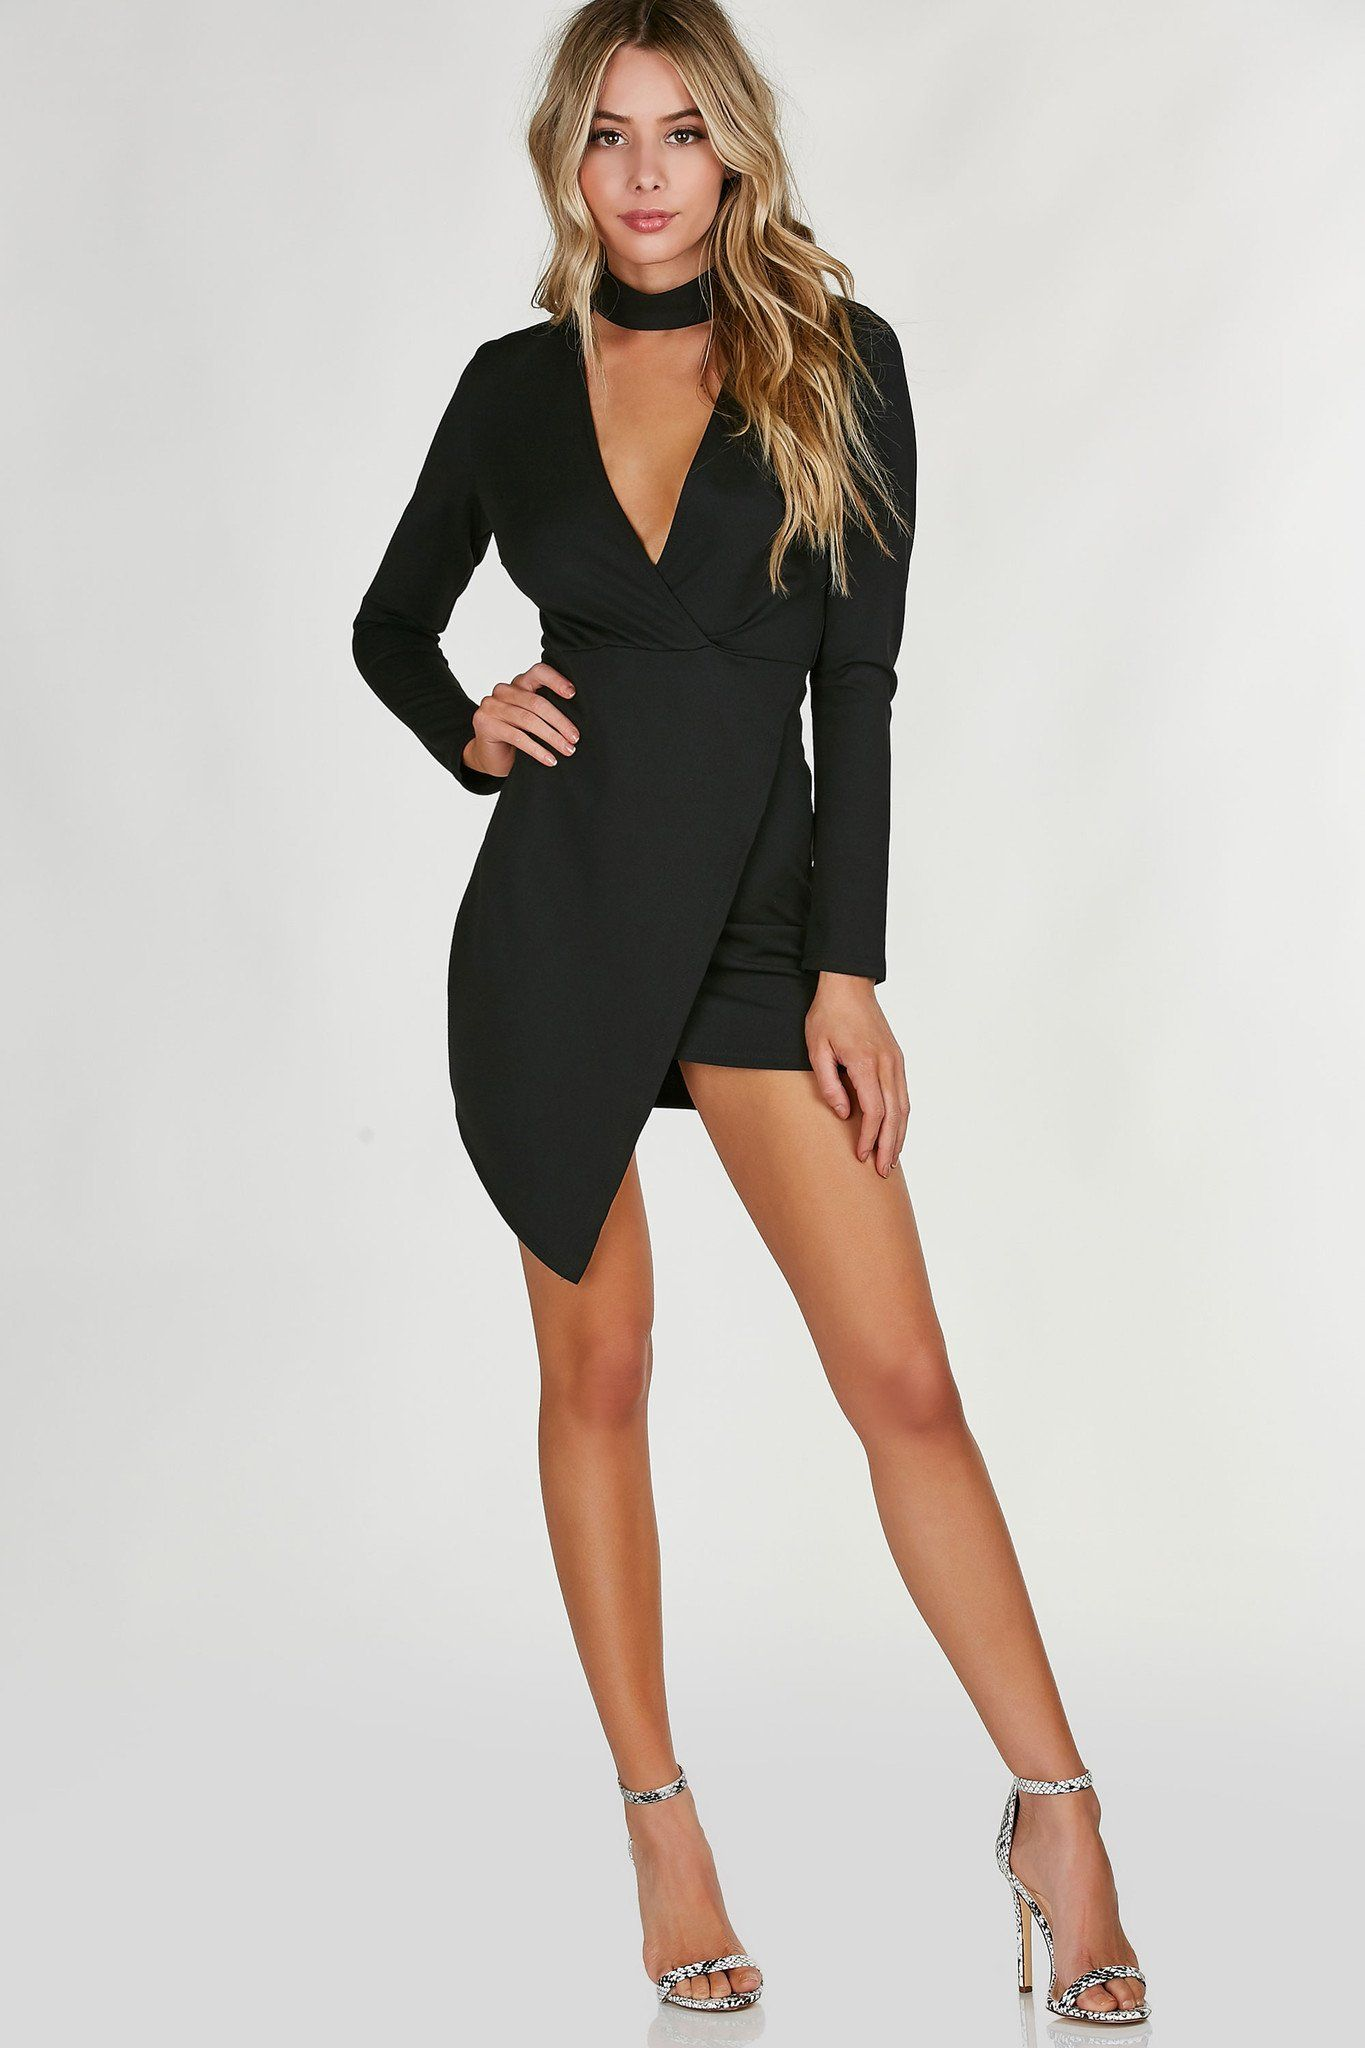 Chic choker neck dress with cut out in front long sleeves with